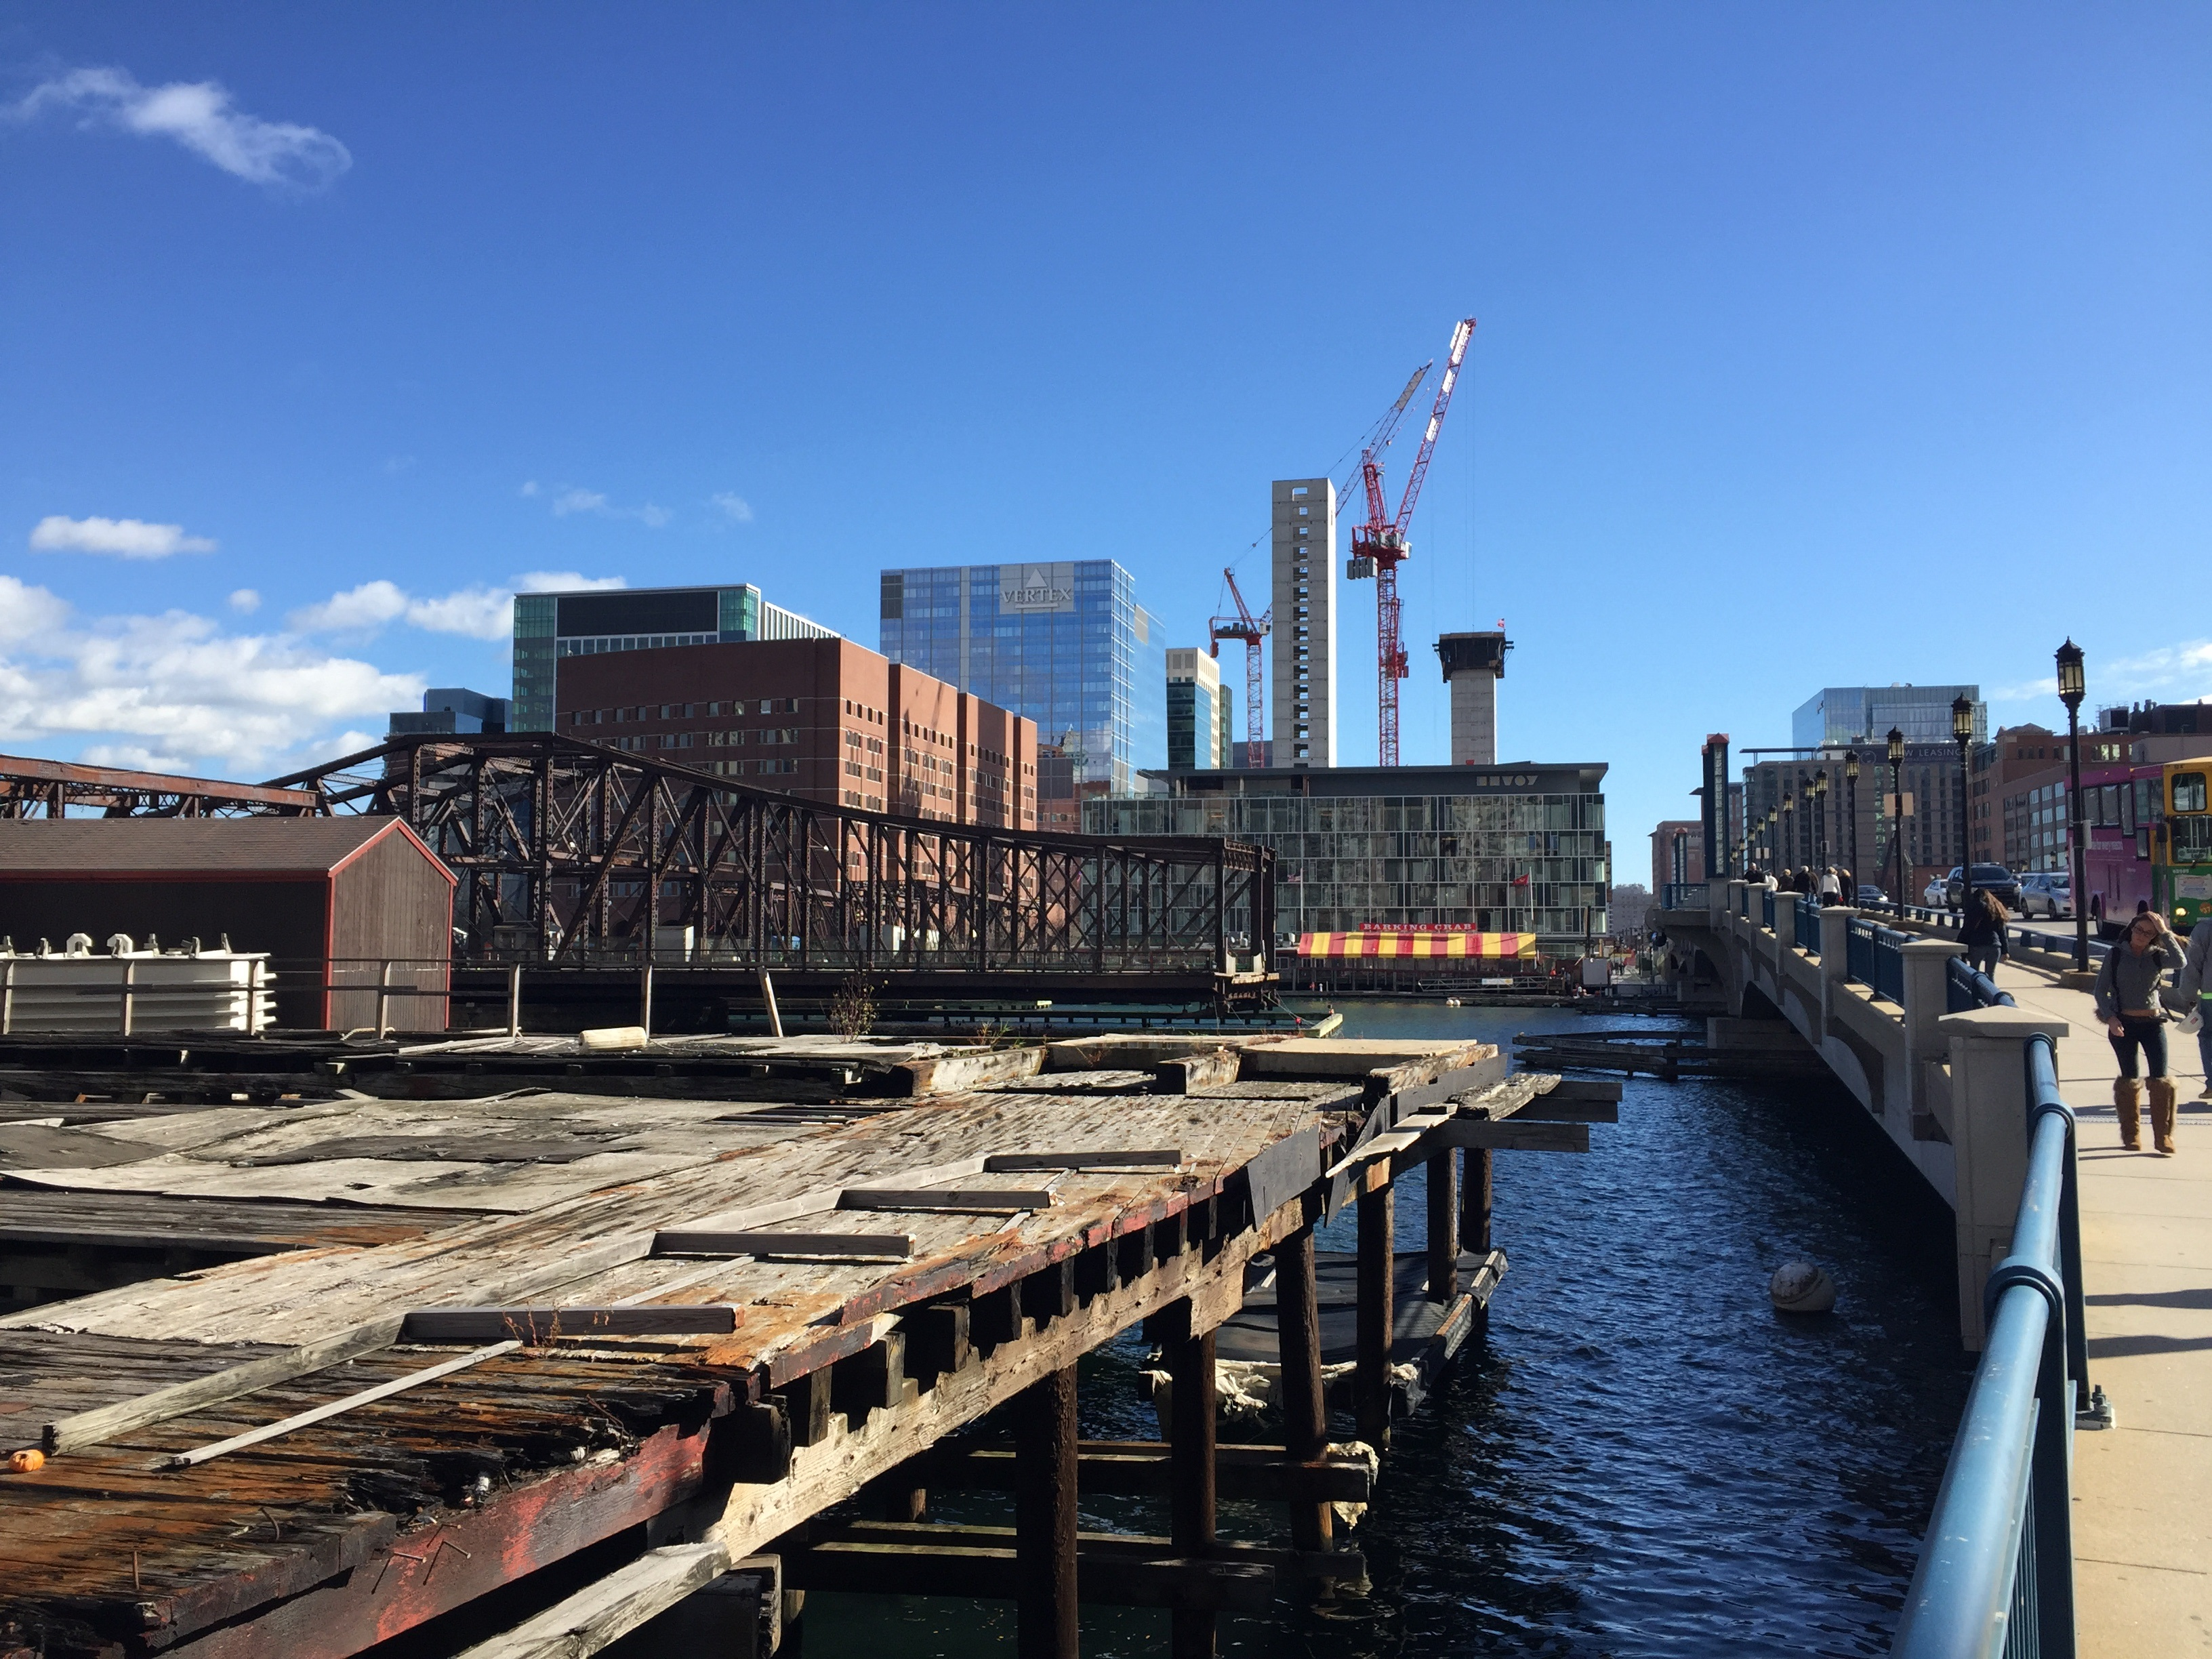 We must learn from Seaport District failures - CommonWealth Magazine